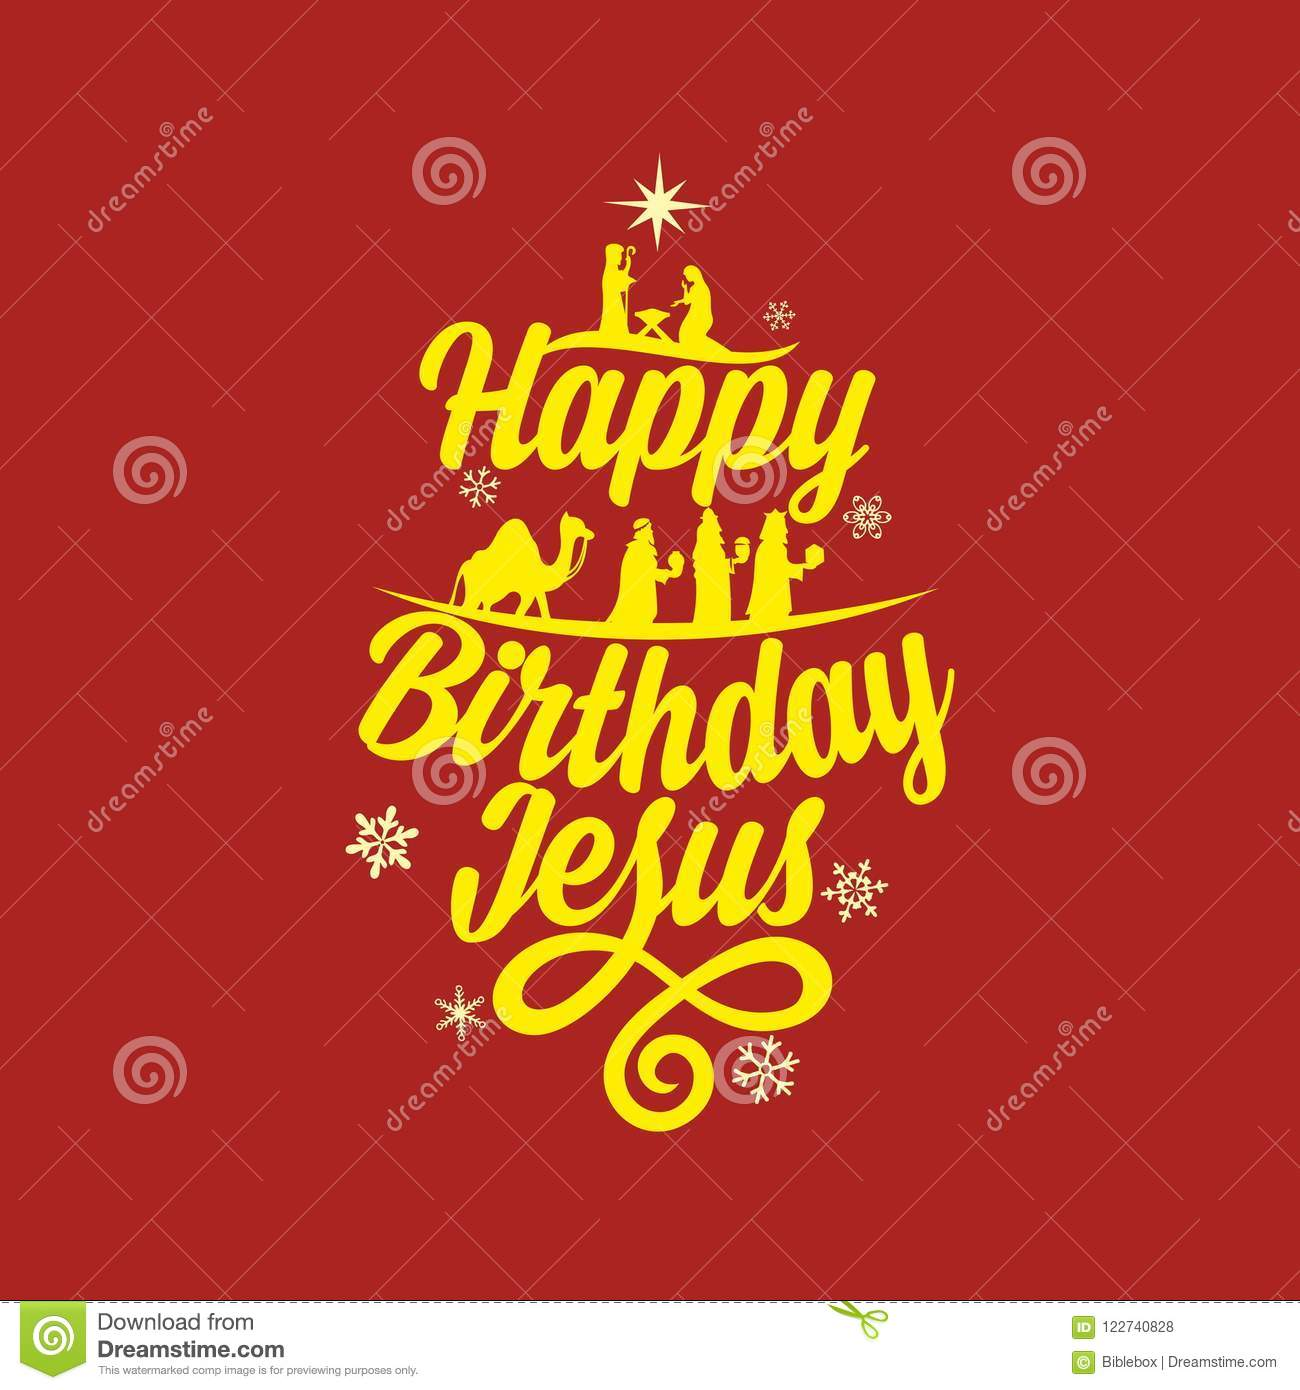 happy birthday jesus merry christmas